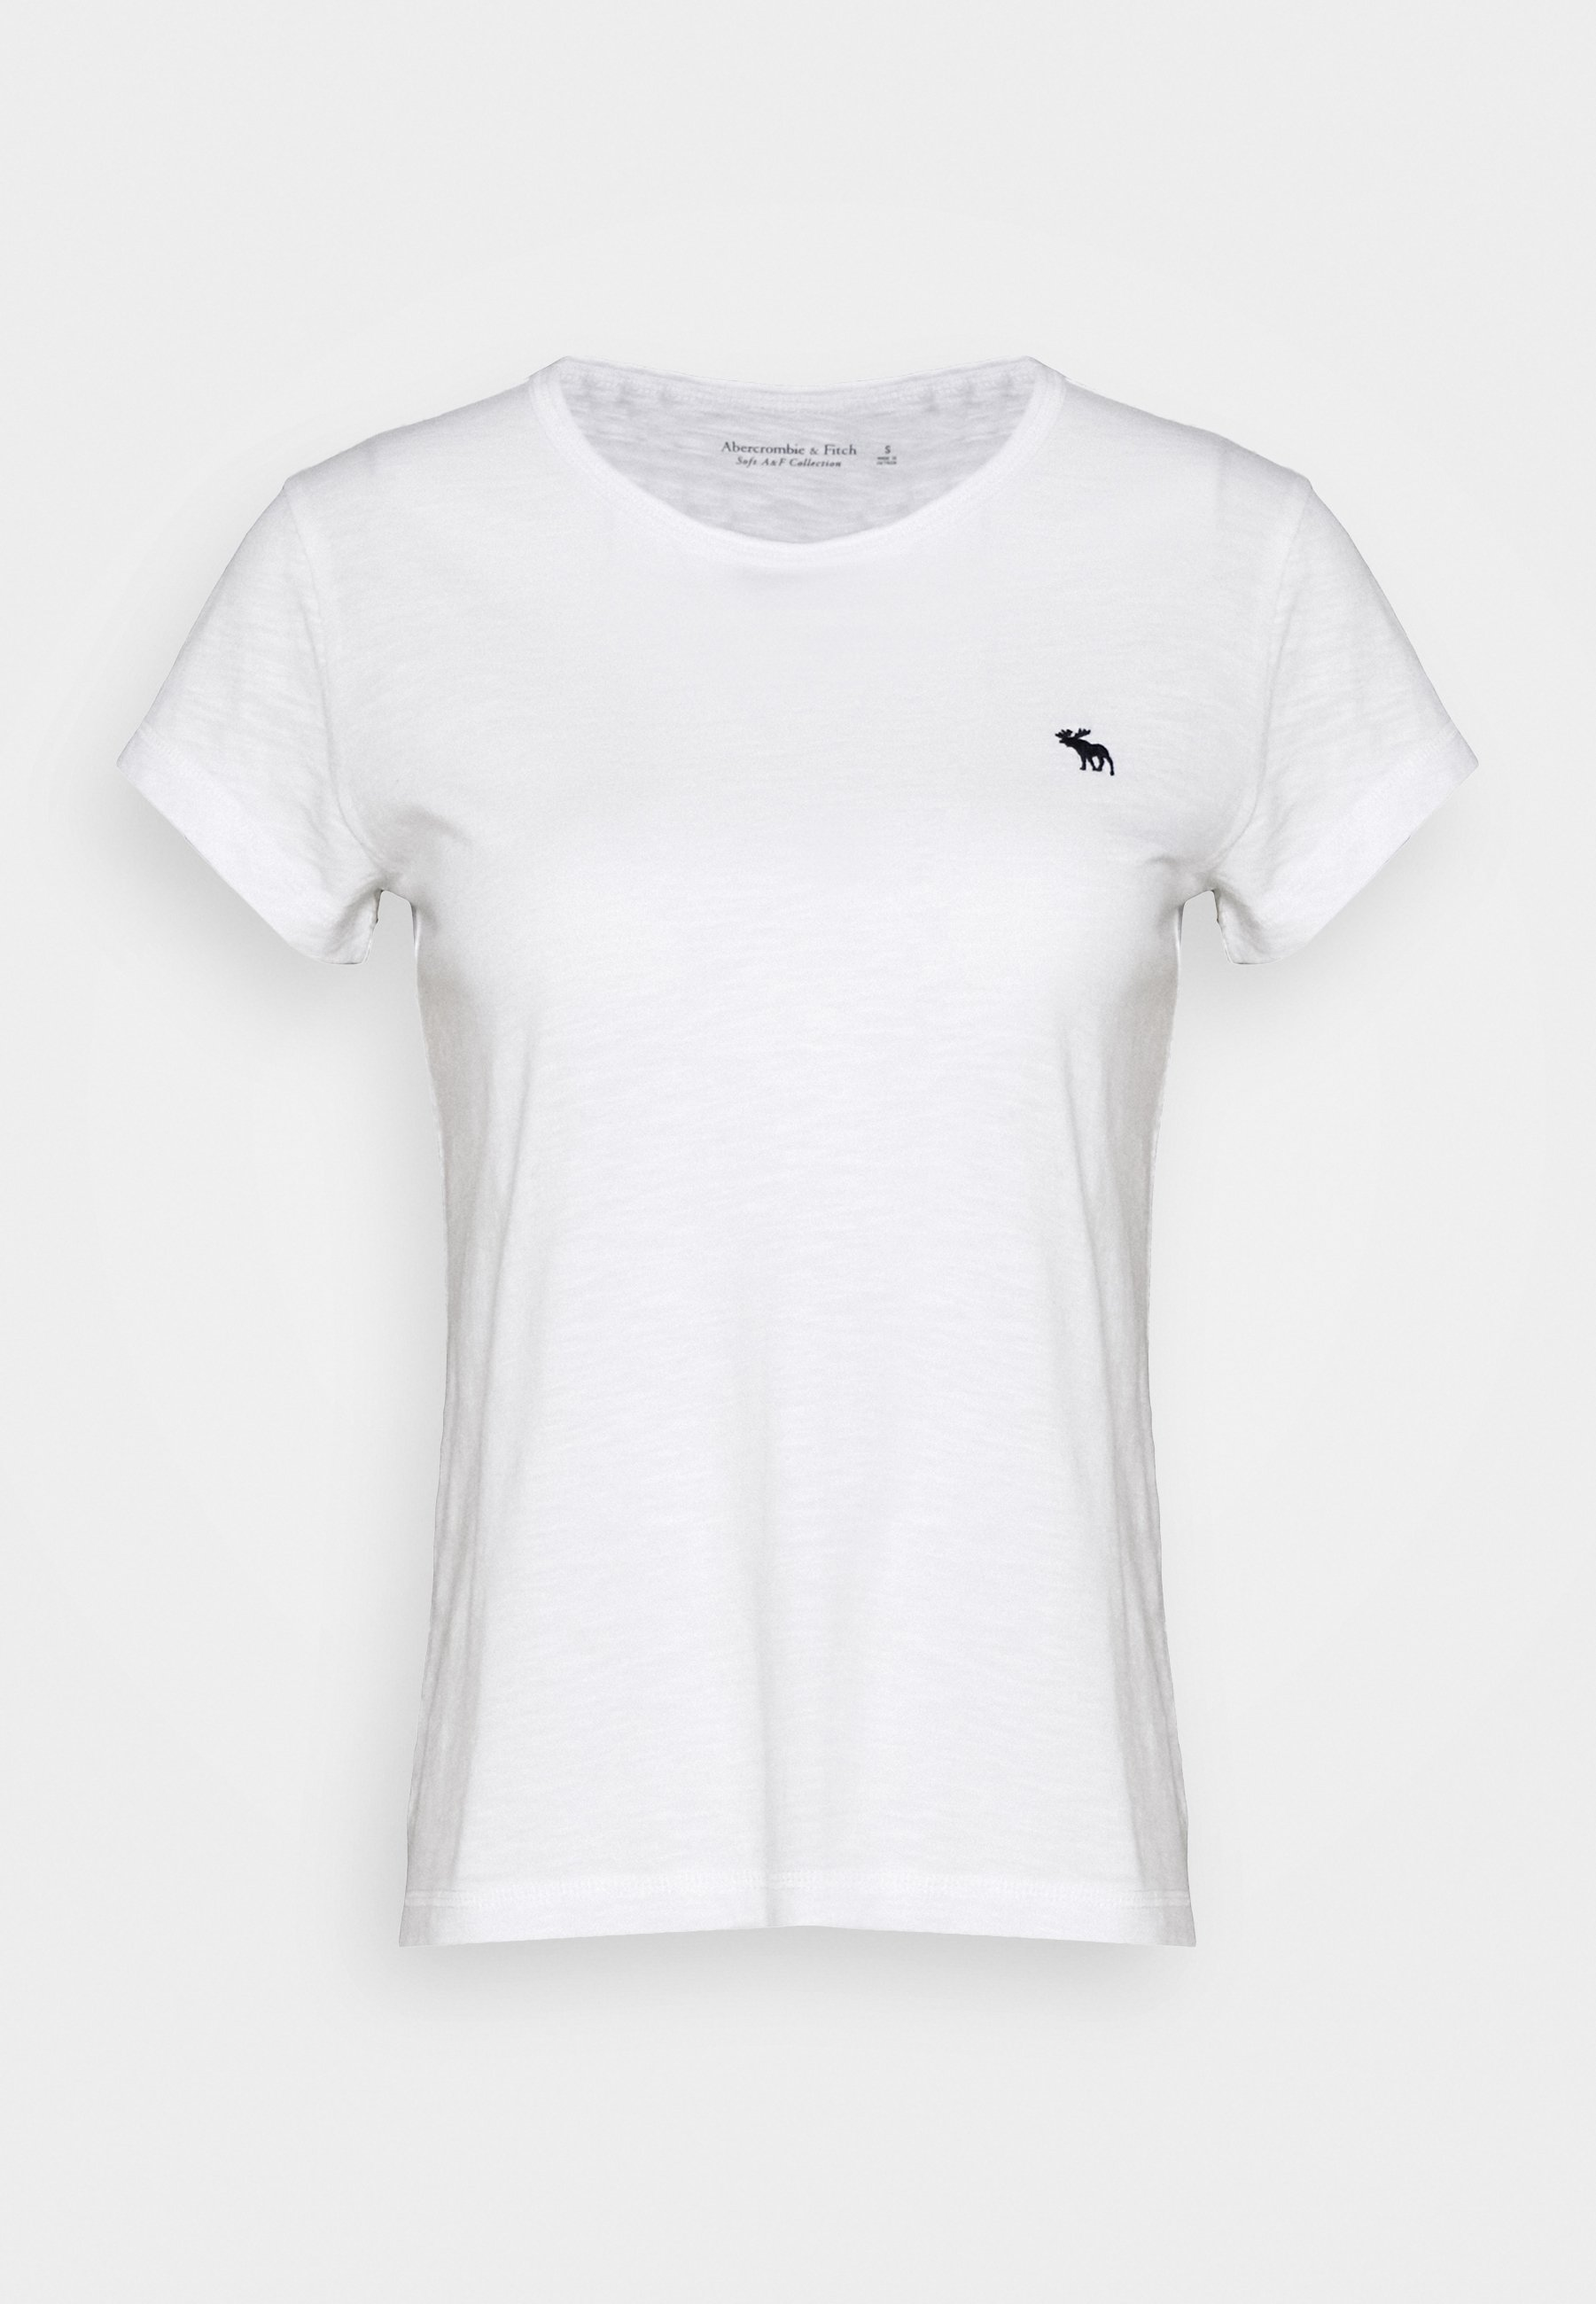 Abercrombie & Fitch Icon Crew Tee - T-shirts White/hvit